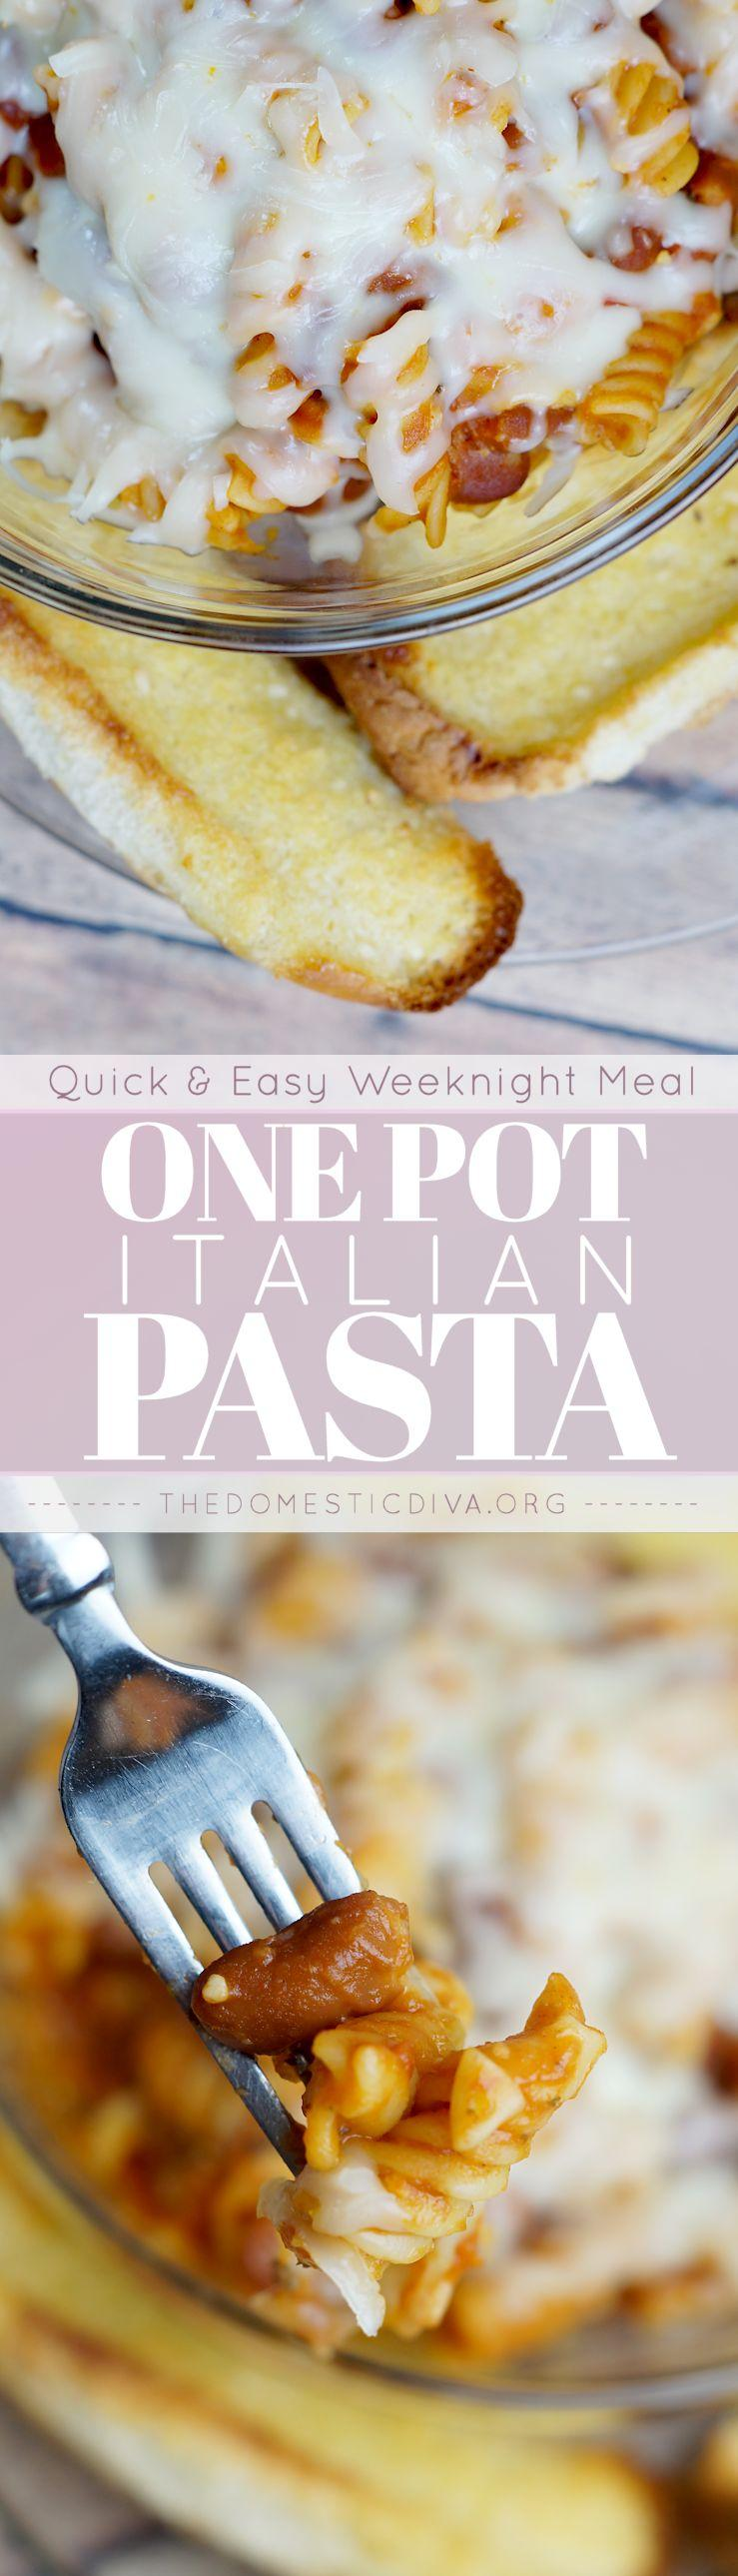 Quick & Easy Meal Idea: One Pot Italian Pasta Dinner Recipe